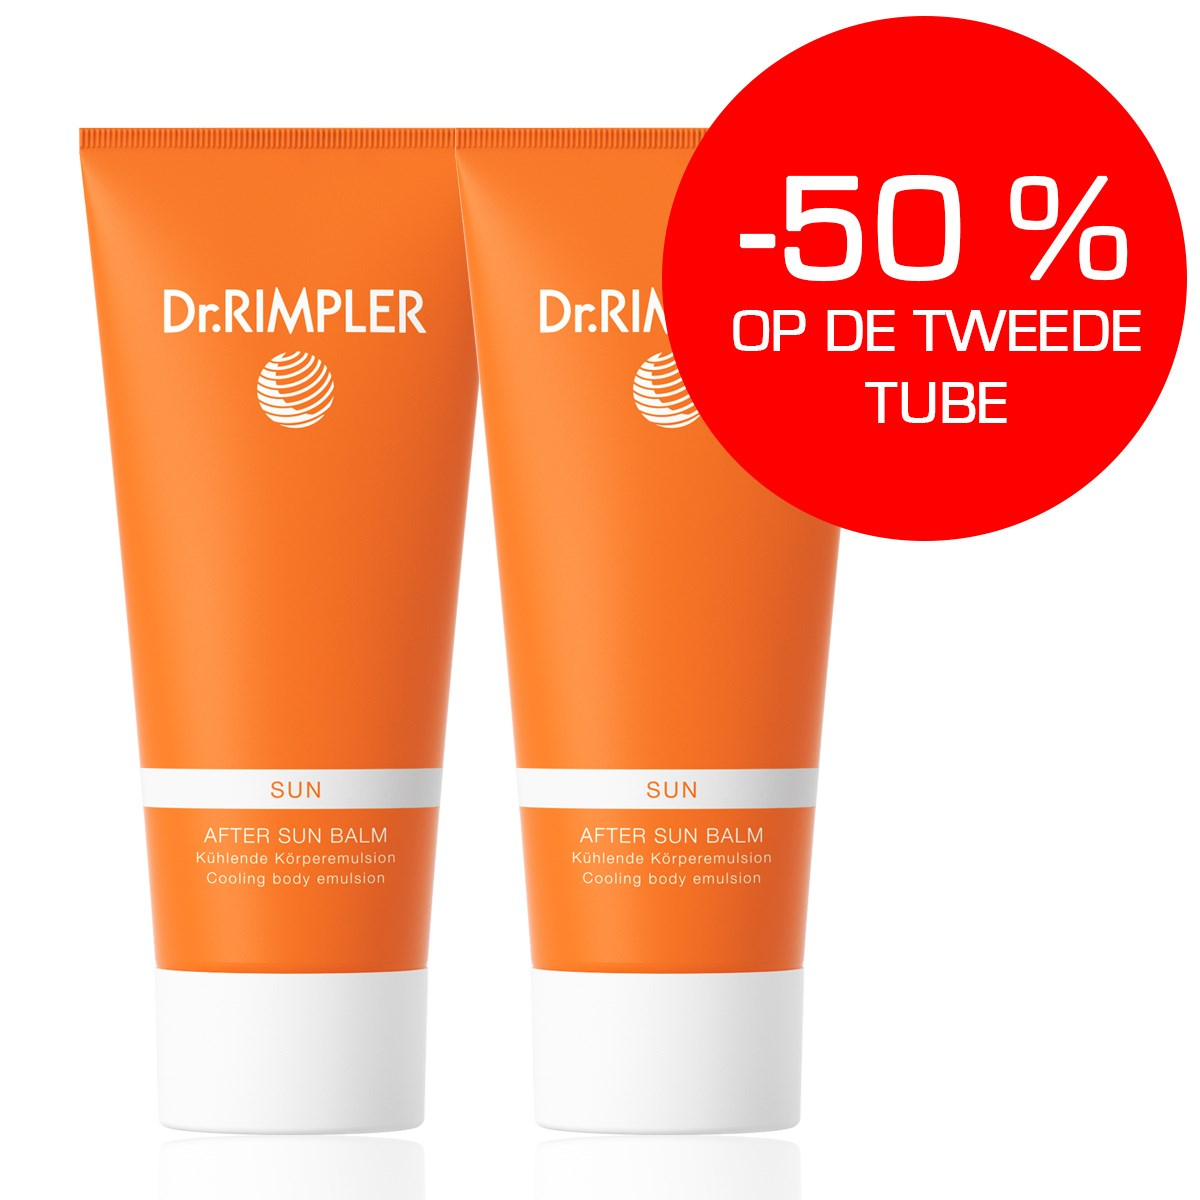 DR RIMPLER AFTER SUN BALM DUO PACK 2x200ml